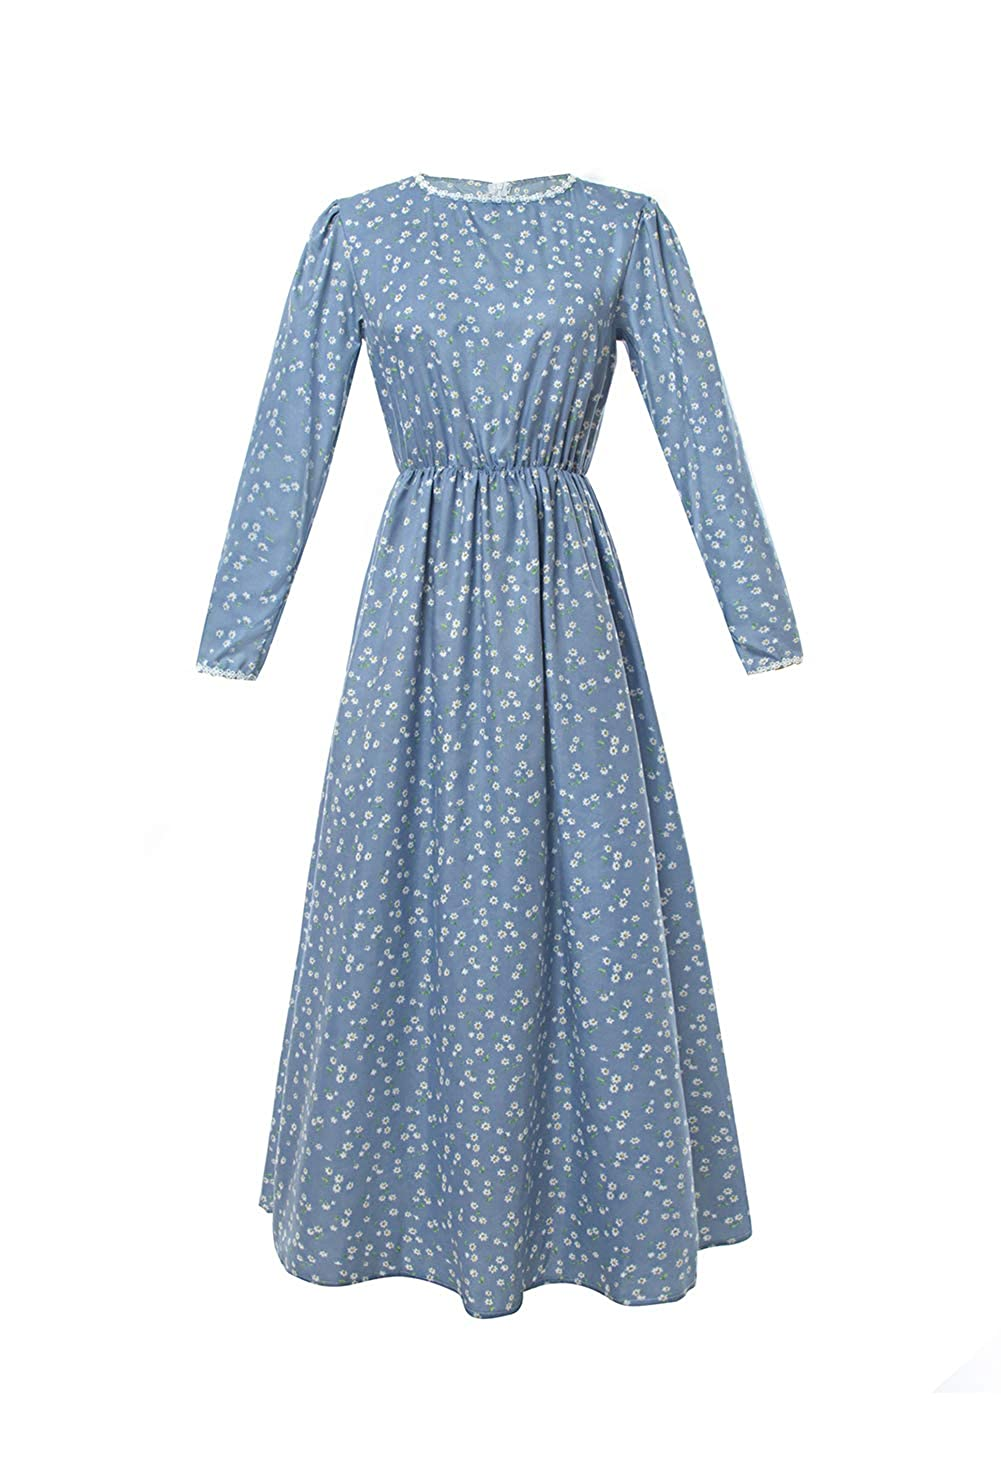 Cottagecore Dresses Aesthetic, Granny, Vintage 1890-1915 Pioneer Women Costume Floral Prairie Dress Deluxe Colonial Dress Laura Ingalls Costume $35.99 AT vintagedancer.com